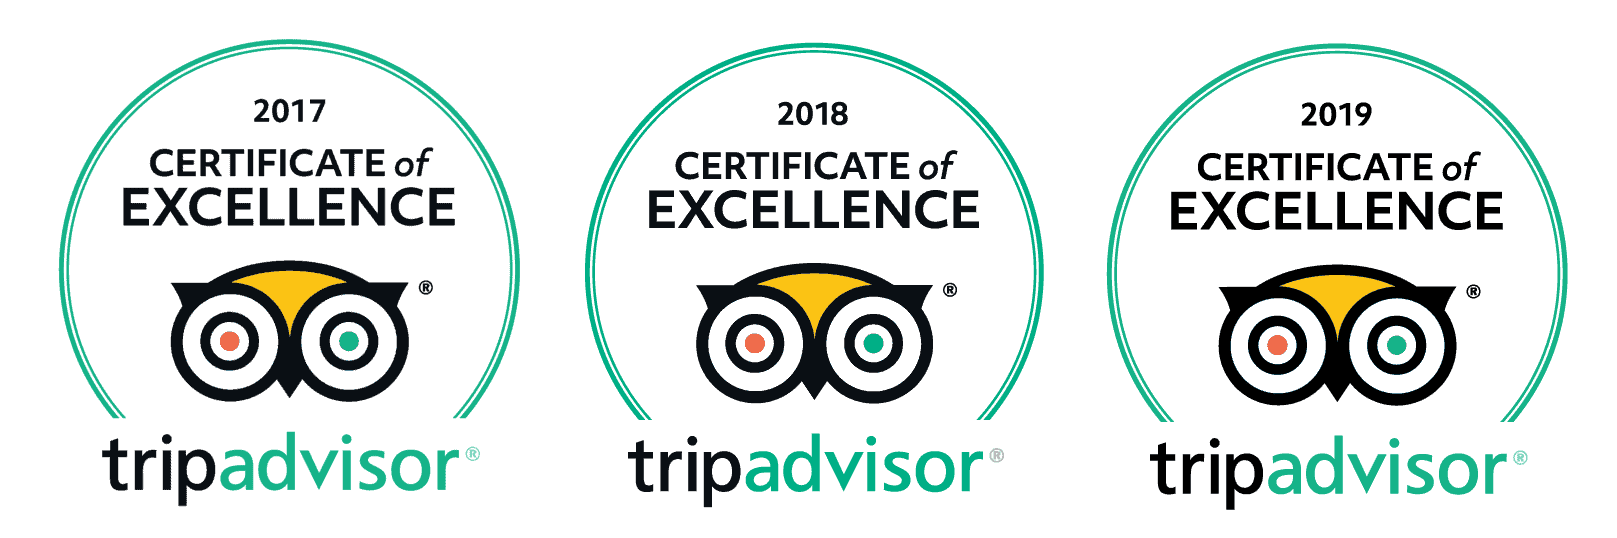 Trip Advisor-Certificate-of-Excellence 2017 2018 2019